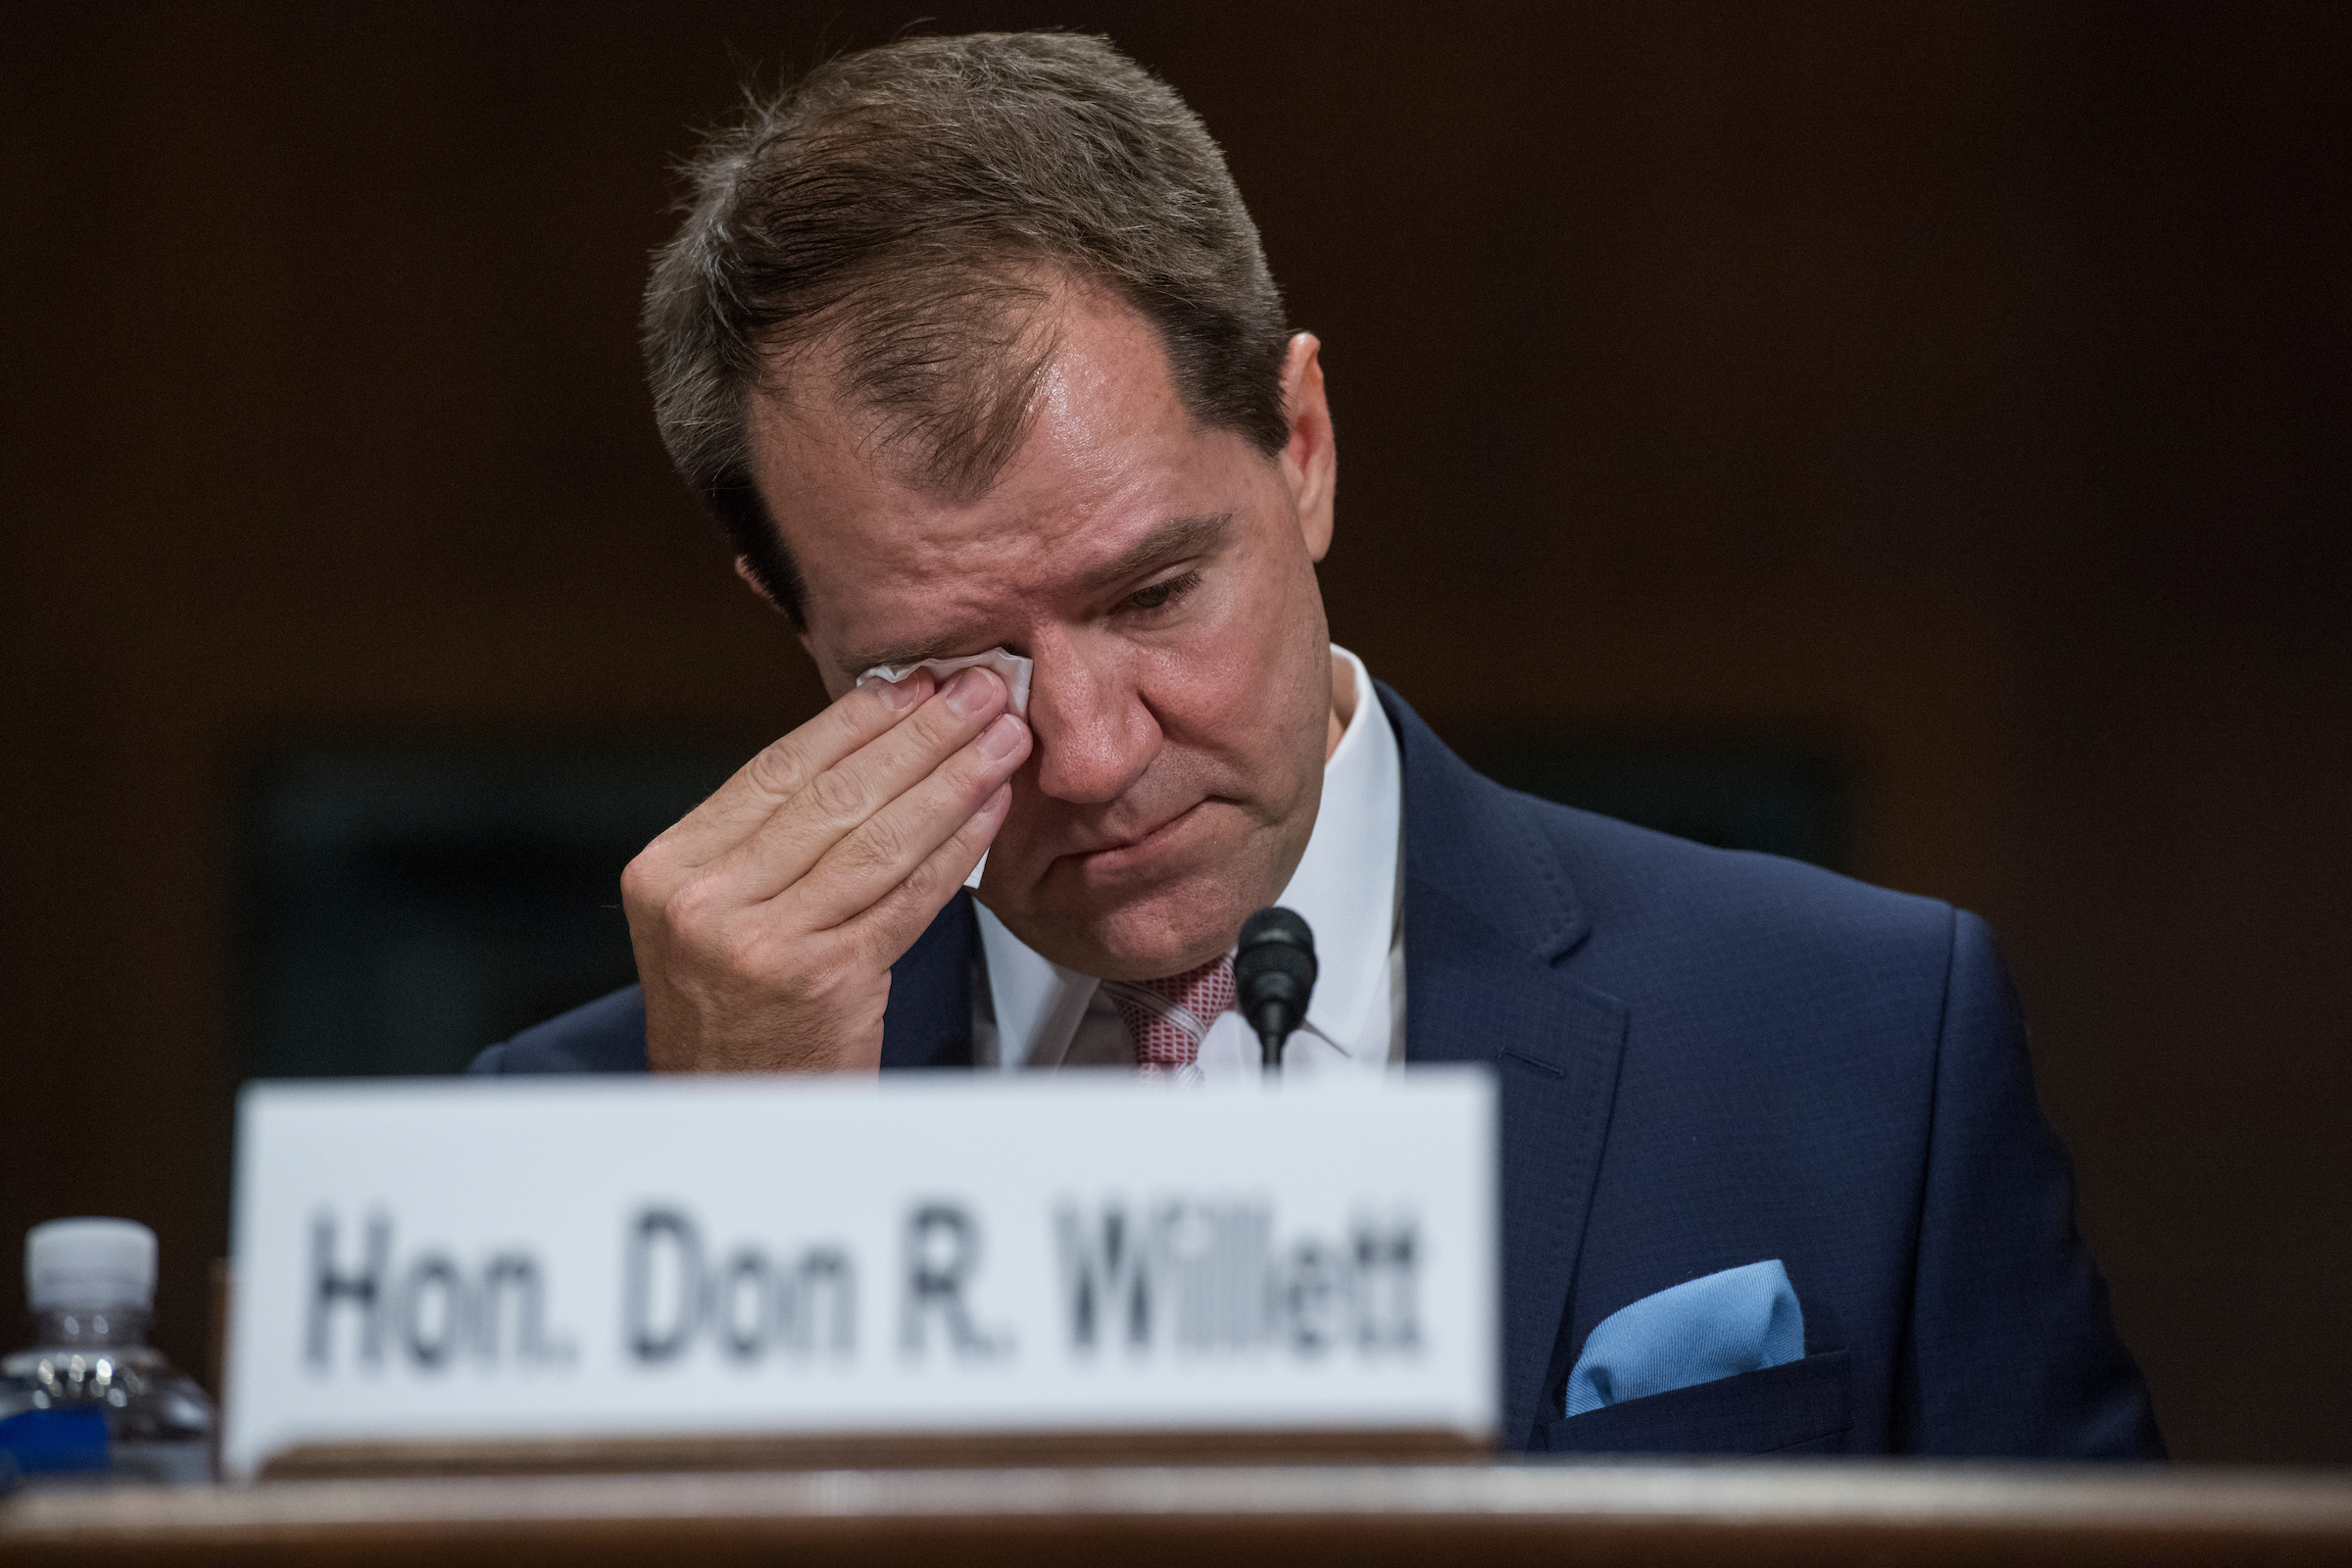 UNITED STATES - NOVEMBER 15: Don R. Willett, nominee to be a judge for the 5th U.S. Circuit Court of Appeals, testifies during his Senate Judiciary Committee confirmation hearing in Dirksen Building on November 15, 2017. (Photo By Tom Williams/CQ Roll Call)